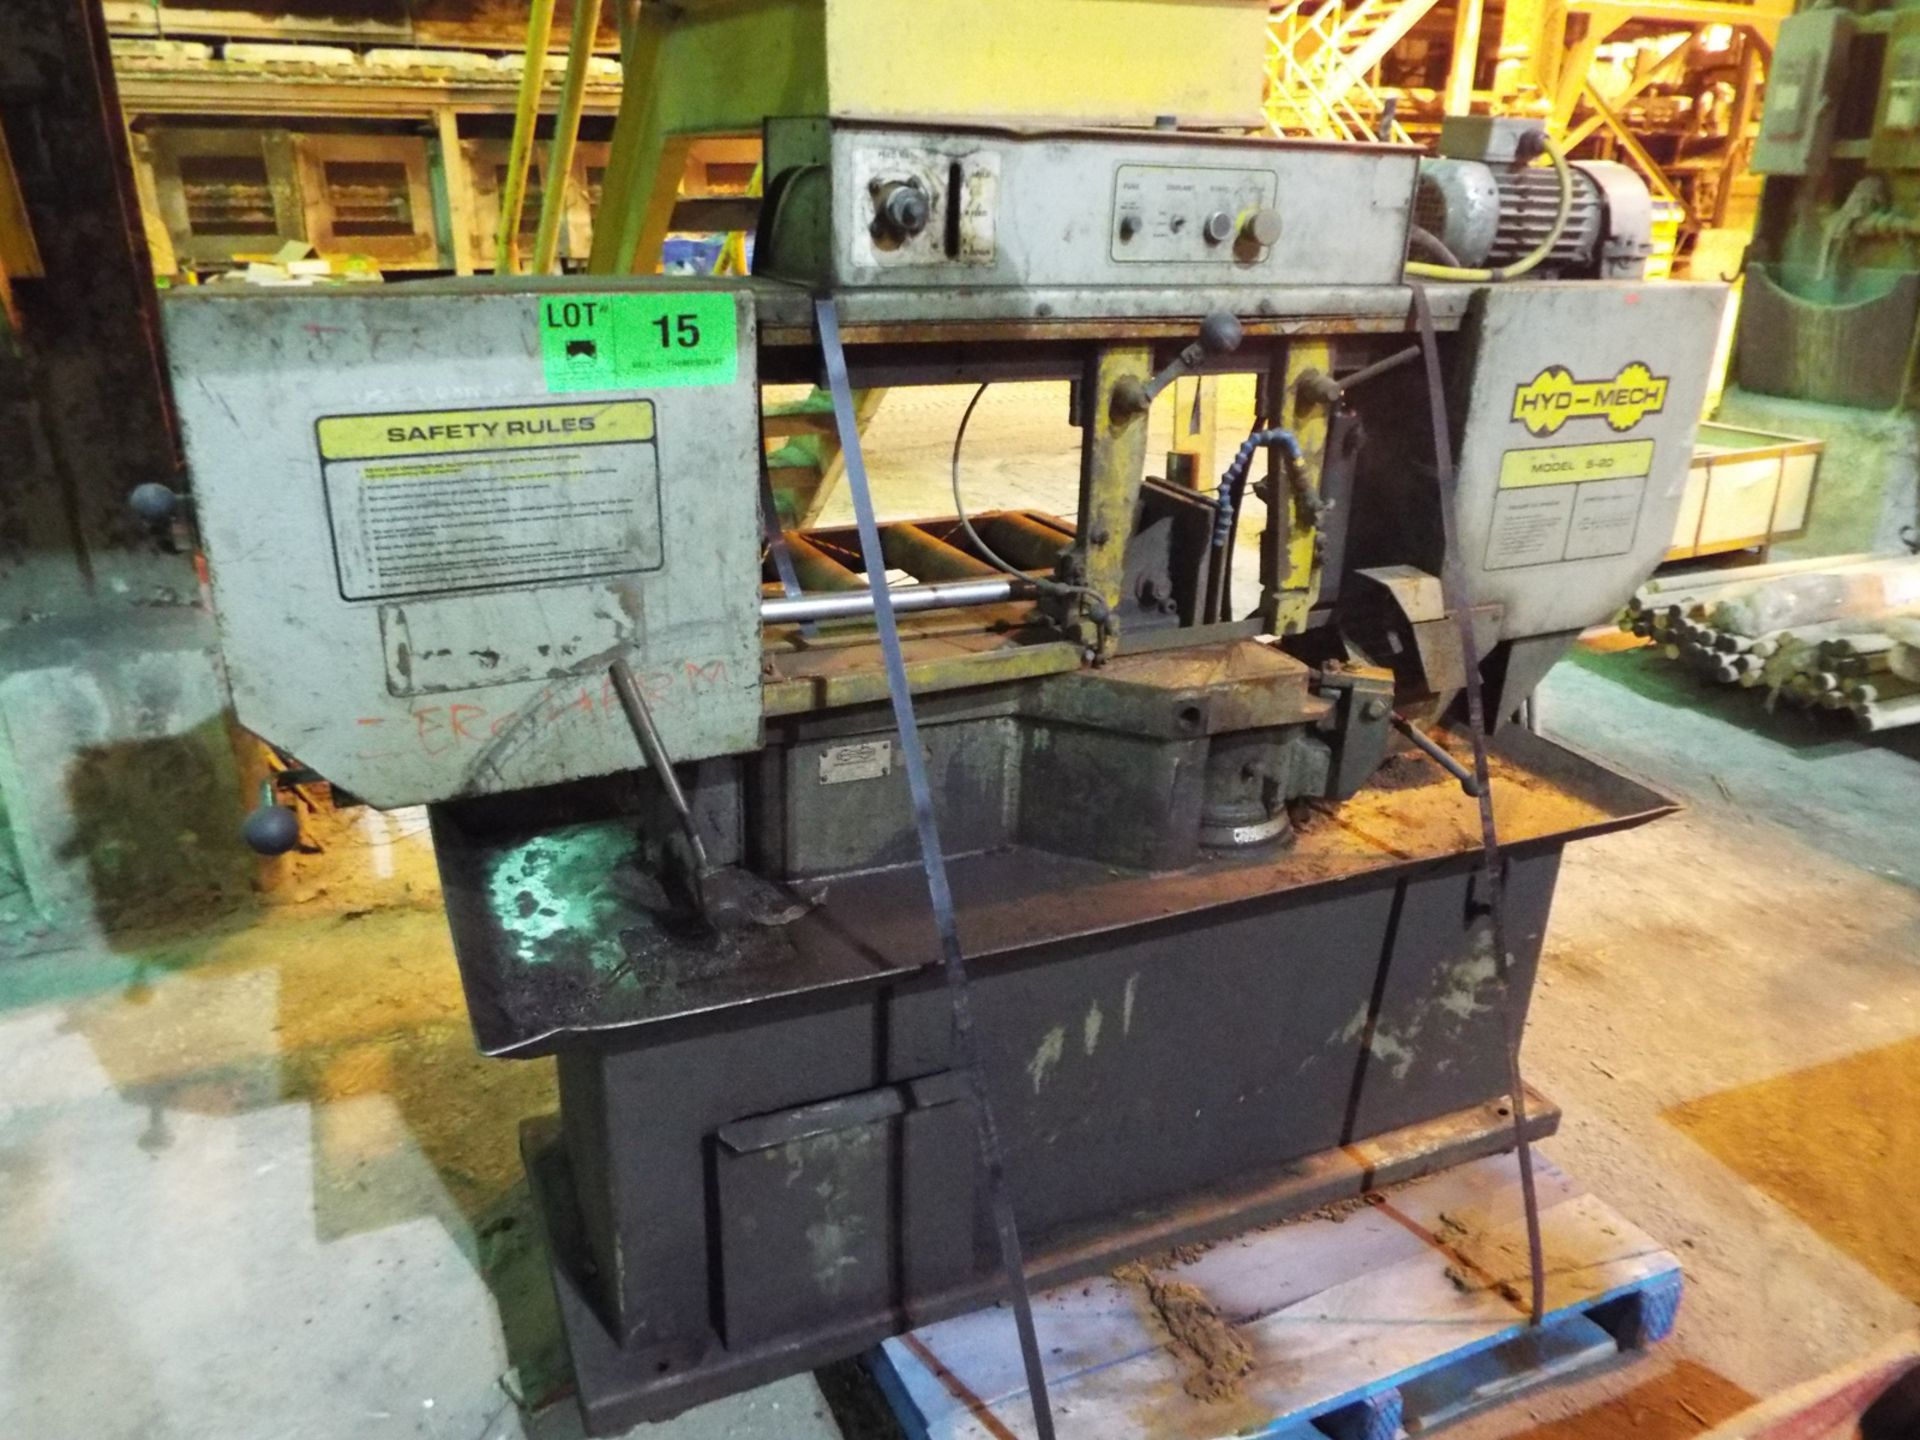 """Lot 15 - HYD-MECH S-20 AUTOMATIC HORIZONTAL BAND SAW WITH 13""""X18"""" CAPACITY, 370 RPM, 2 HP, VARIABLE FEED"""